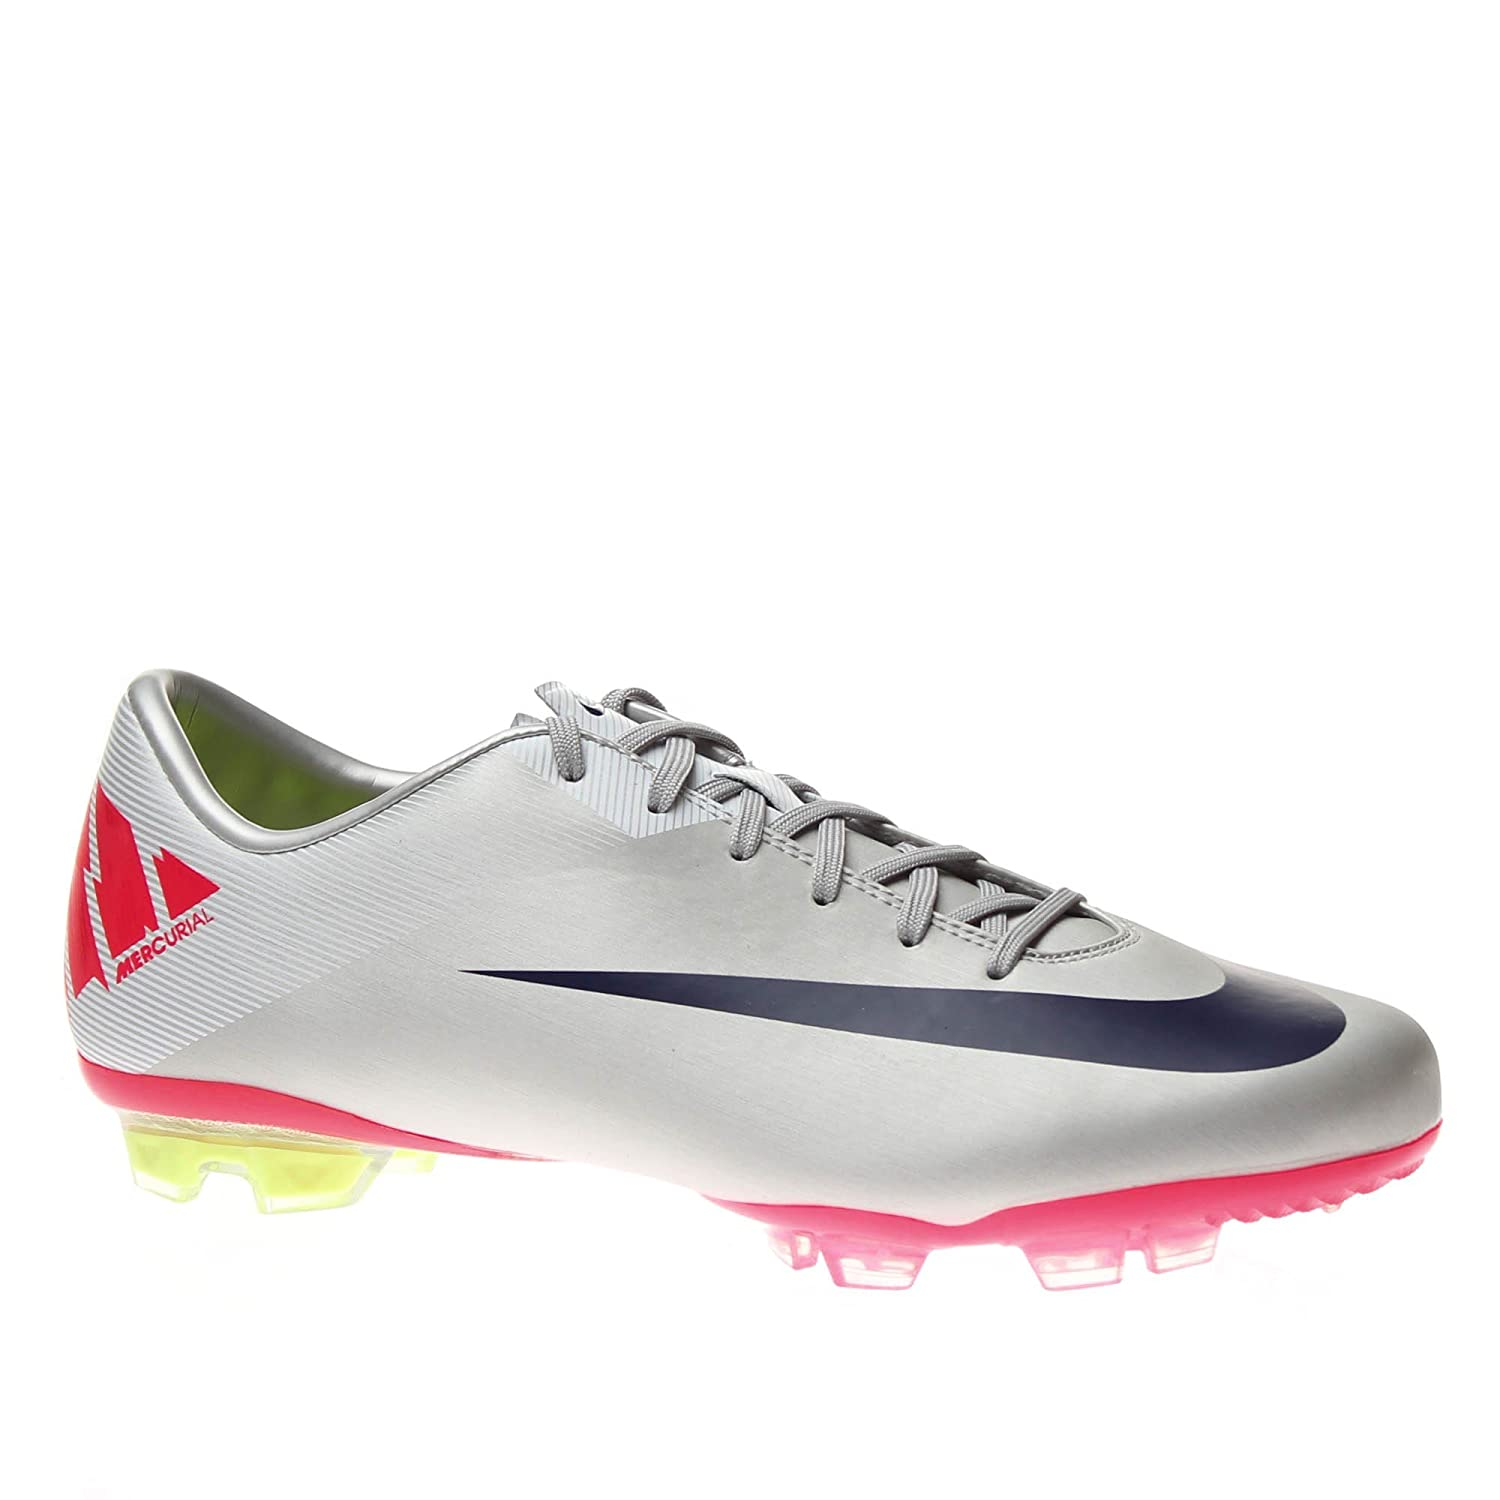 Nike Junior Mercurial Vapor VII FG Soccer Cleats